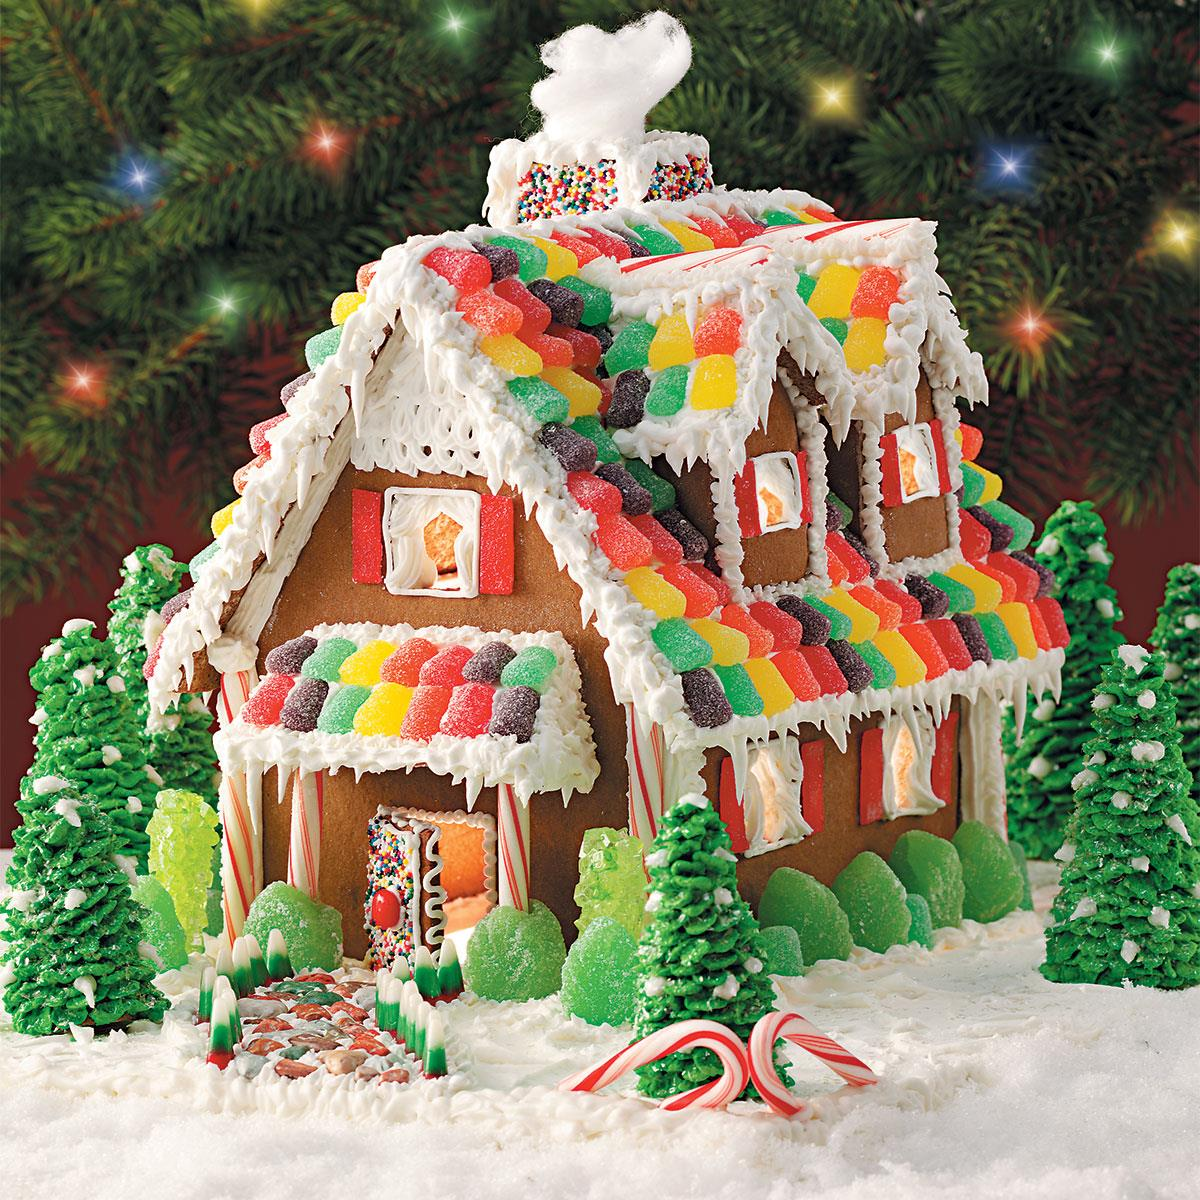 gingerbread christmas cottage recipe taste of home - Gingerbread House Christmas Decoration